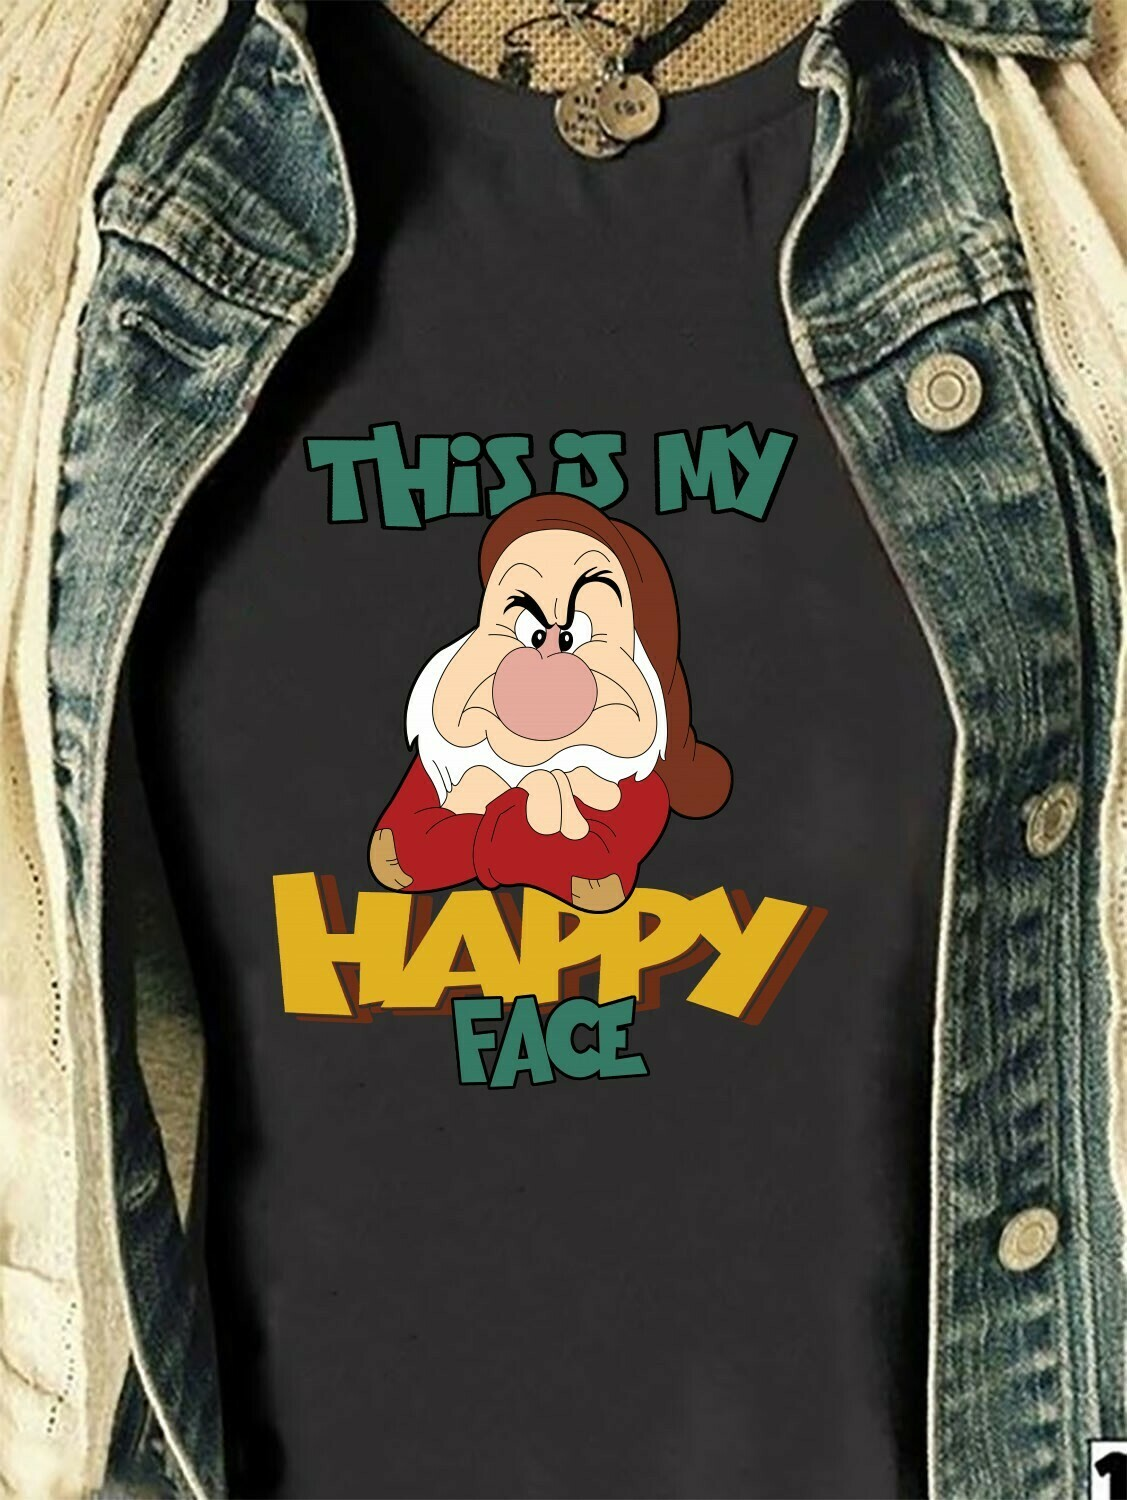 Disney Grumpy Seven Dwarfs This is my Happy face Snow White and the Seven Dwarfs,Walt Disney World,Grumpy Old Man,Dopey Seven Dwarfs T Shirt Long Sleeve Sweatshirt Hoodie Jolly Family Gifts